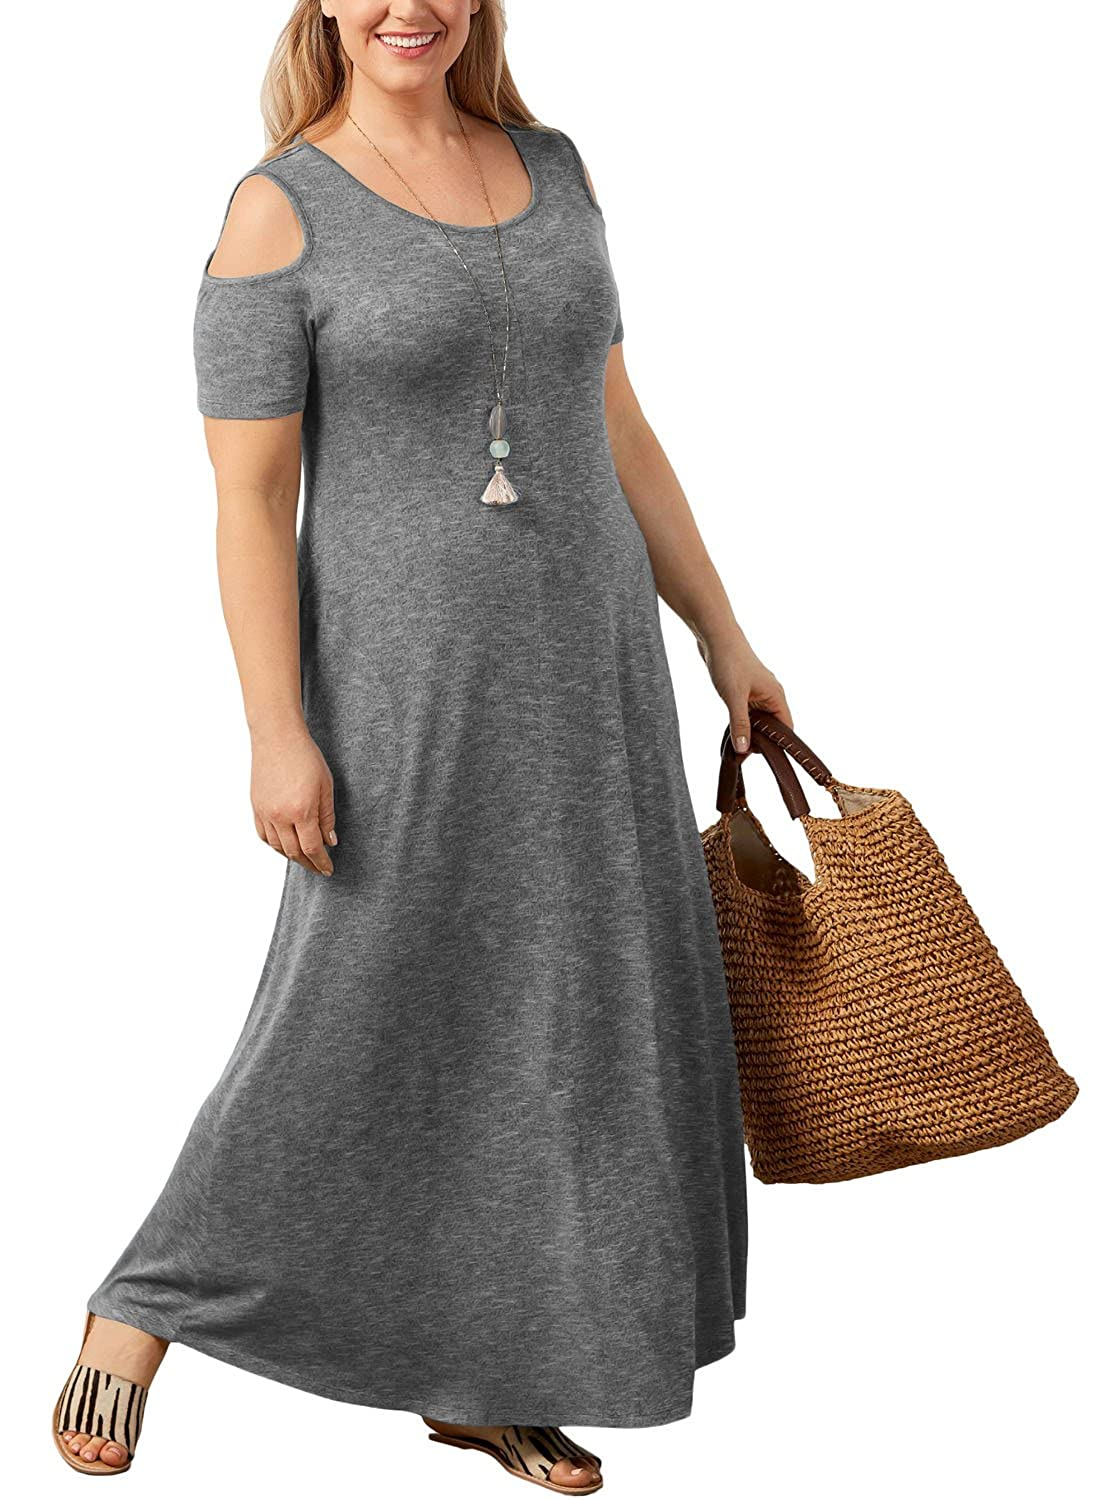 c4d1ae116d Plus Size Maxi Dresses For Women With Cold Shoulder Short Sleeve For  Special Occasions. This Oversized Dress Can Be Worn As Beach Dress, Evening  Dresses, ...